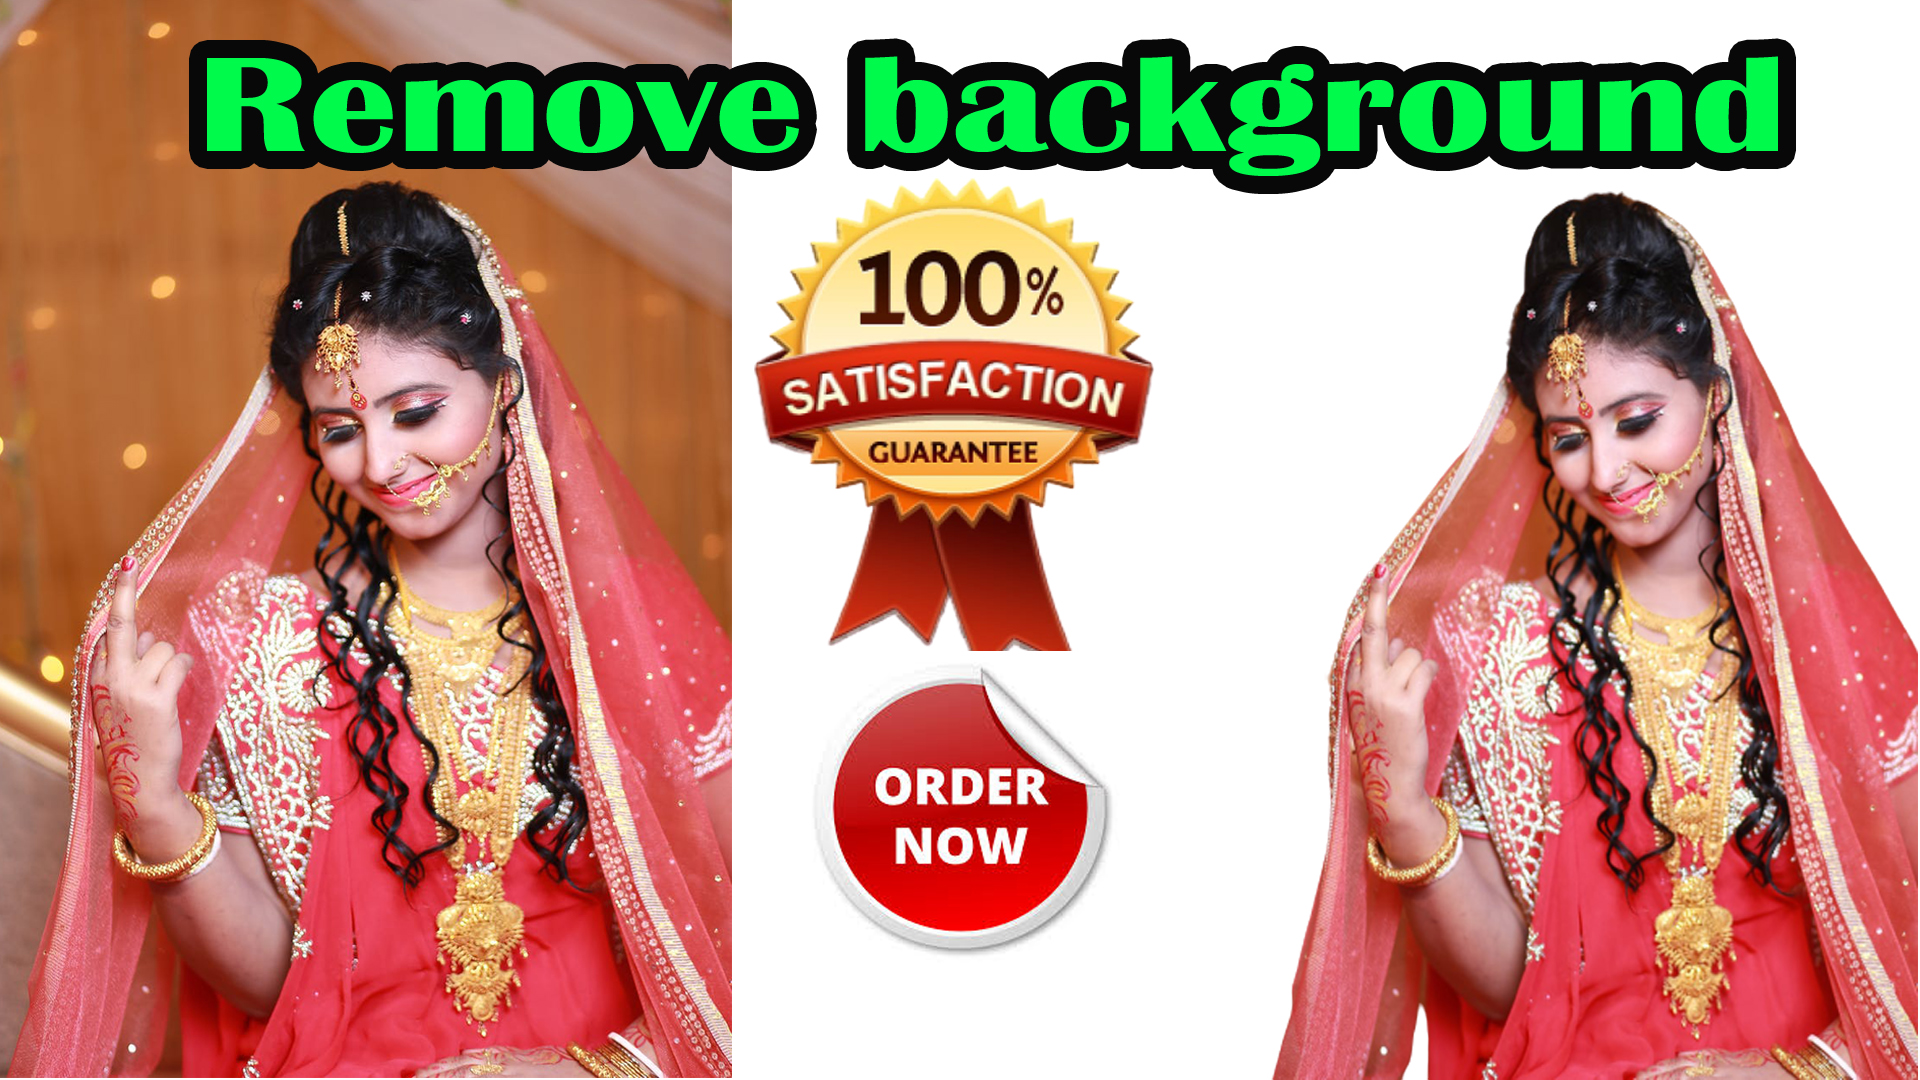 I will do professionally remove 1 to 100 image background